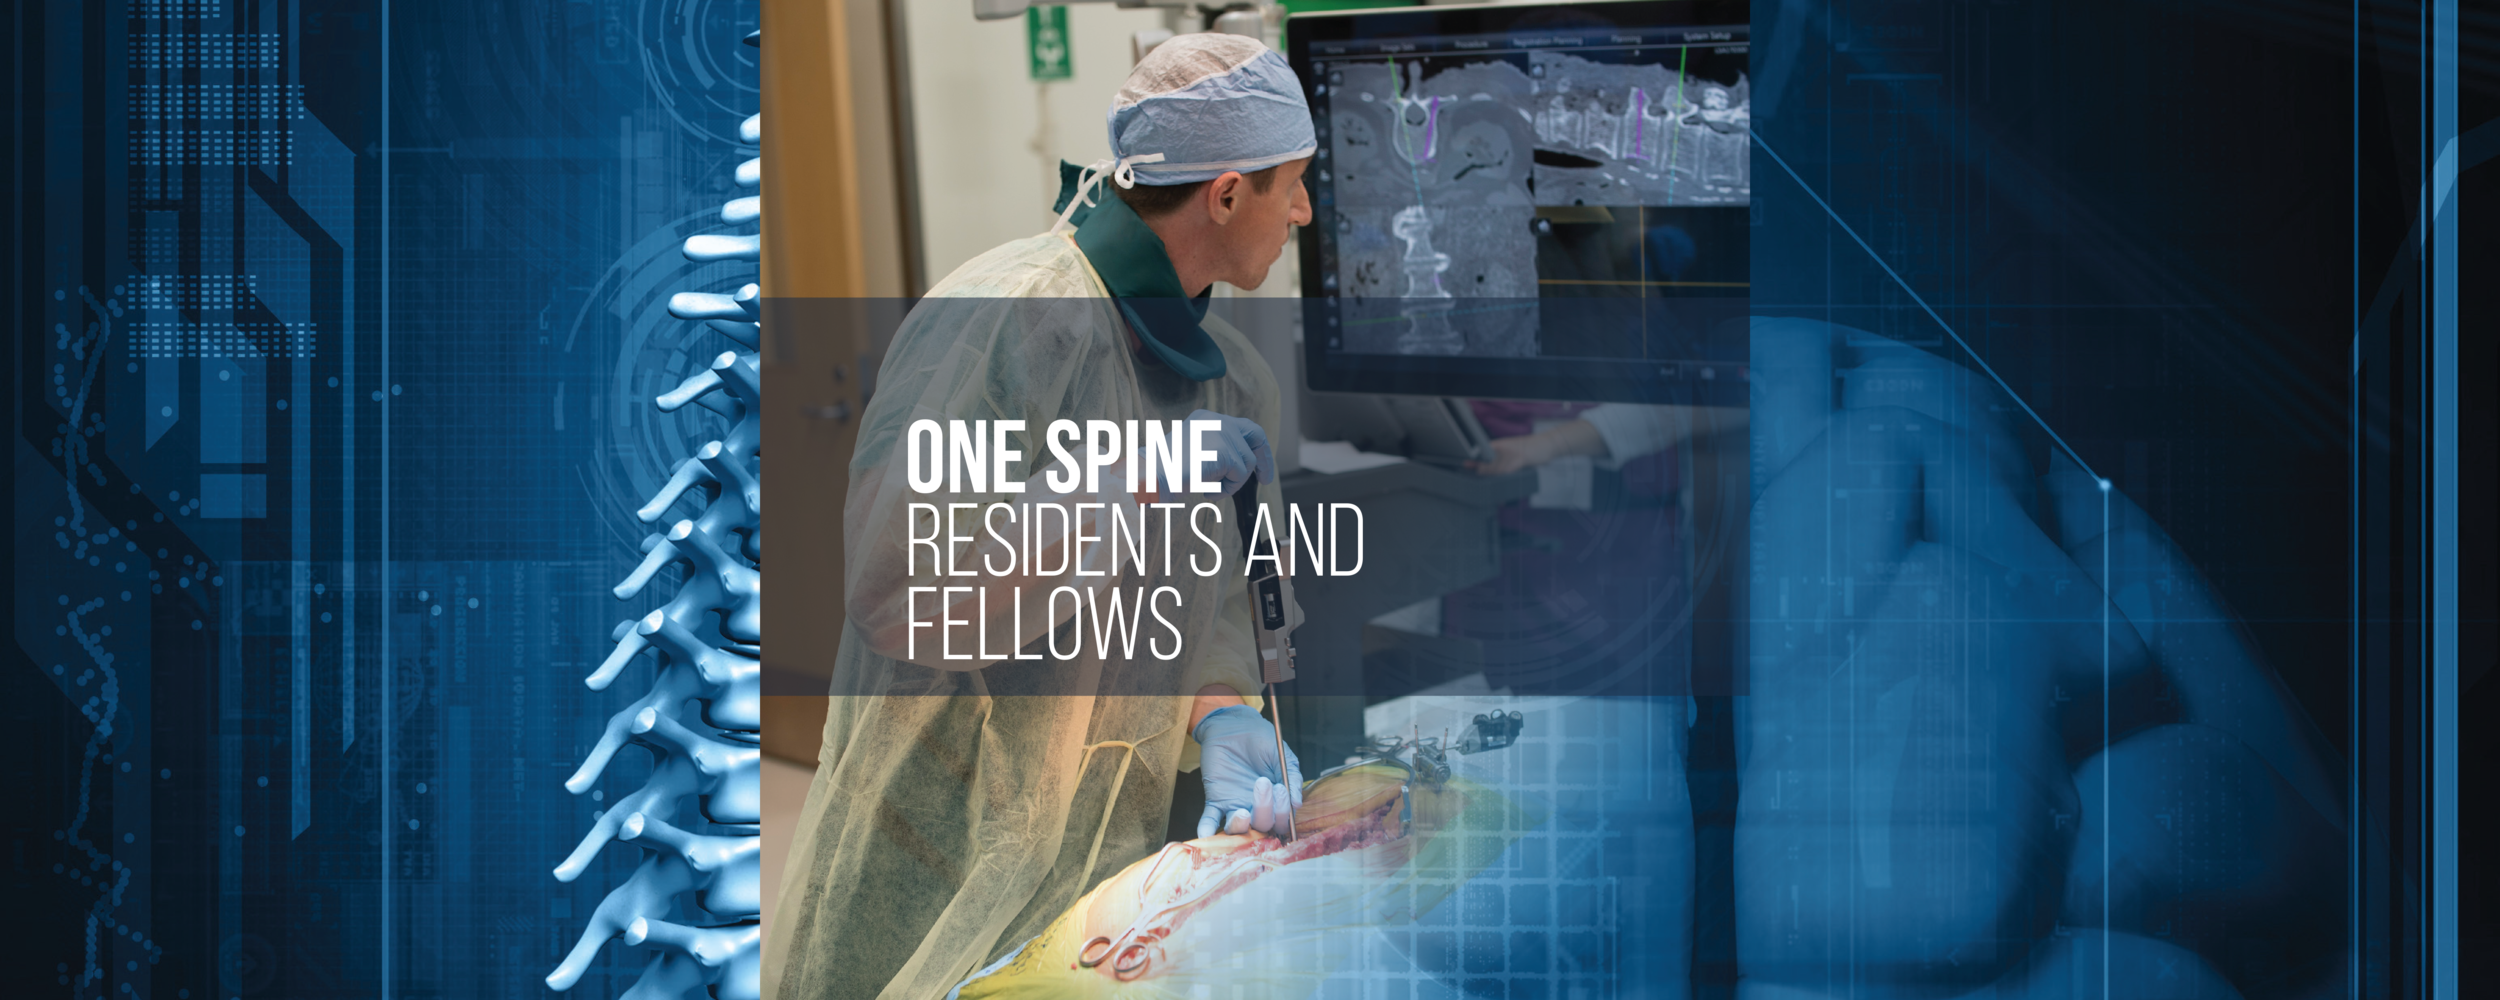 9th annual one spine residents fellows course seattle science